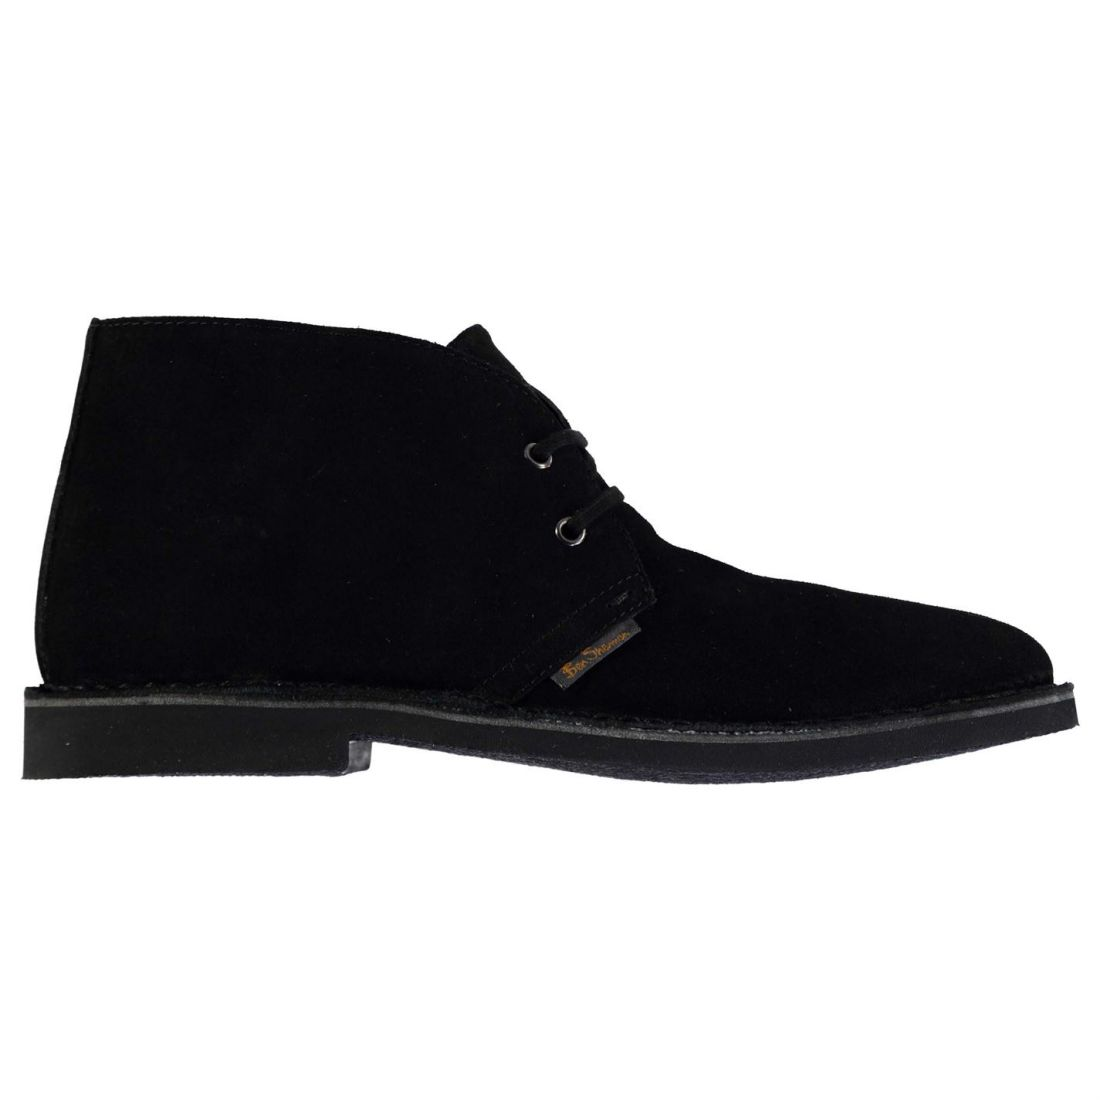 Ben Sherman Mens Gents Hunt Desert Boots Laces Fastened Leather shoes Footwear